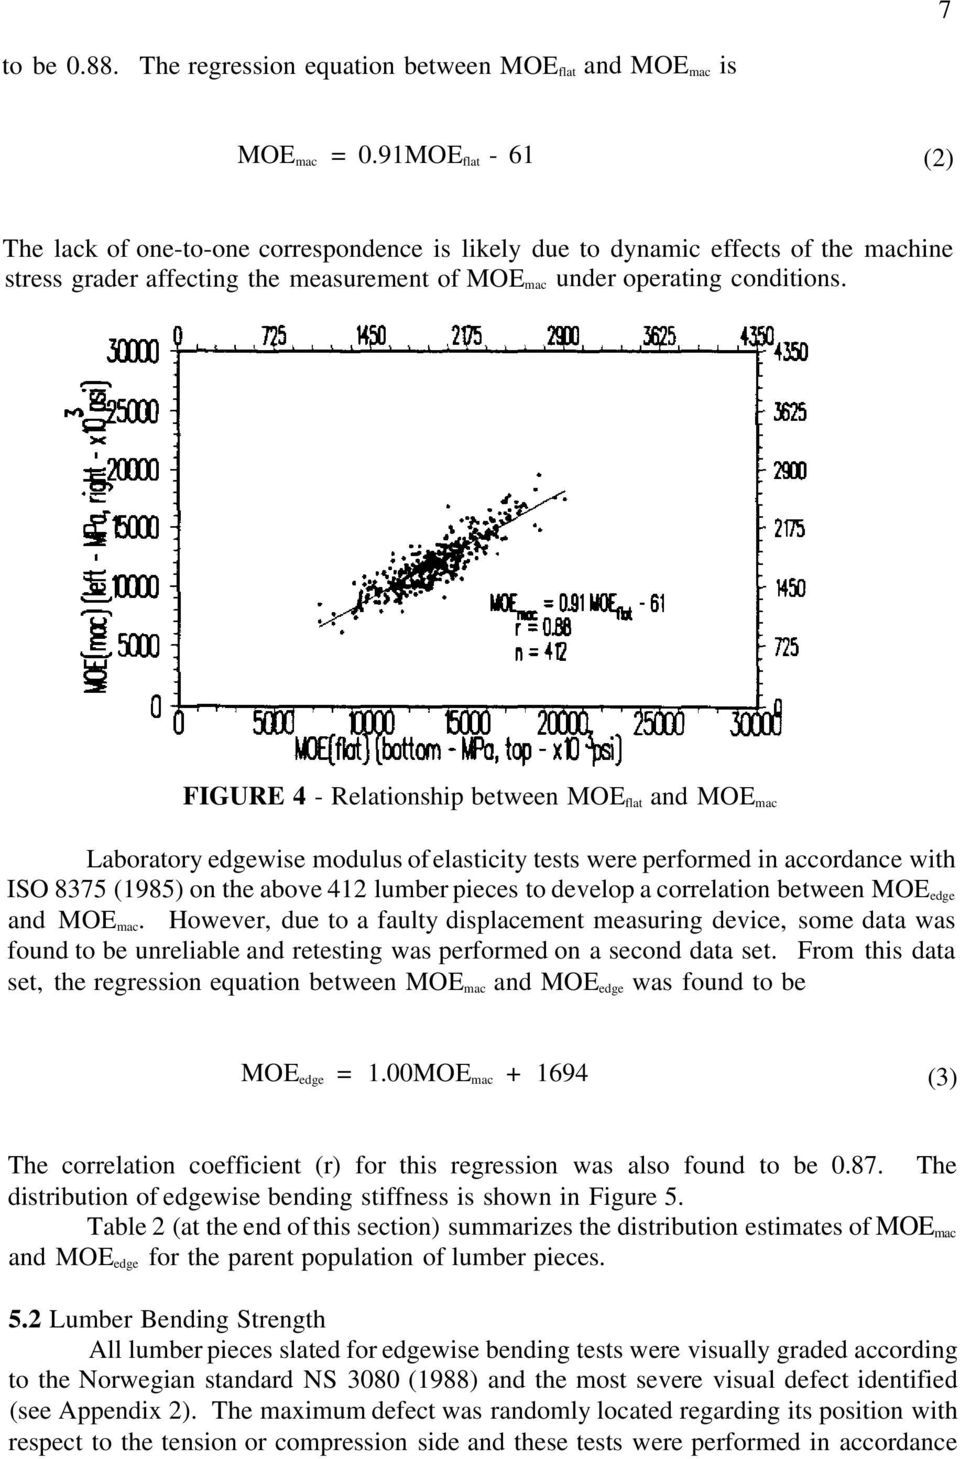 FIGURE 4 - Relationship between MOE flat and MOE mac Laboratory edgewise modulus of elasticity tests were performed in accordance with ISO 8375 (1985) on the above 412 lumber pieces to develop a